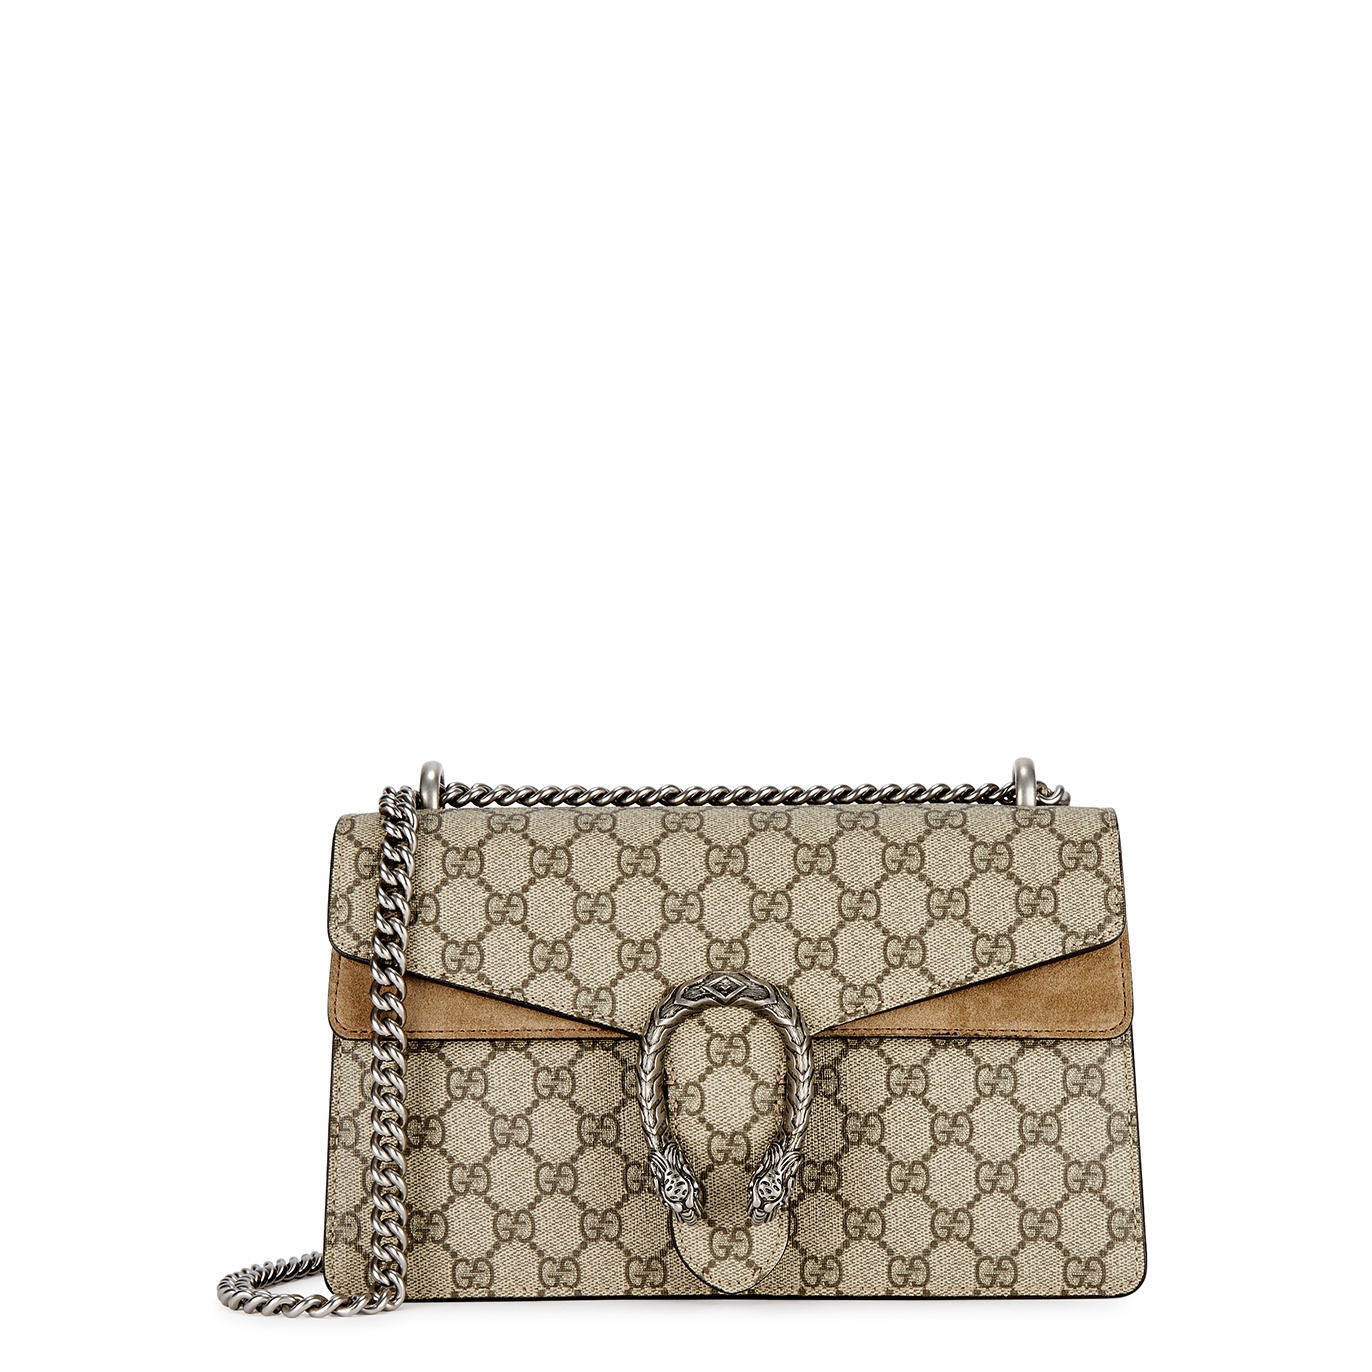 53328d078f63 Gucci Dionysus GG Supreme shoulder bag - Harvey Nichols